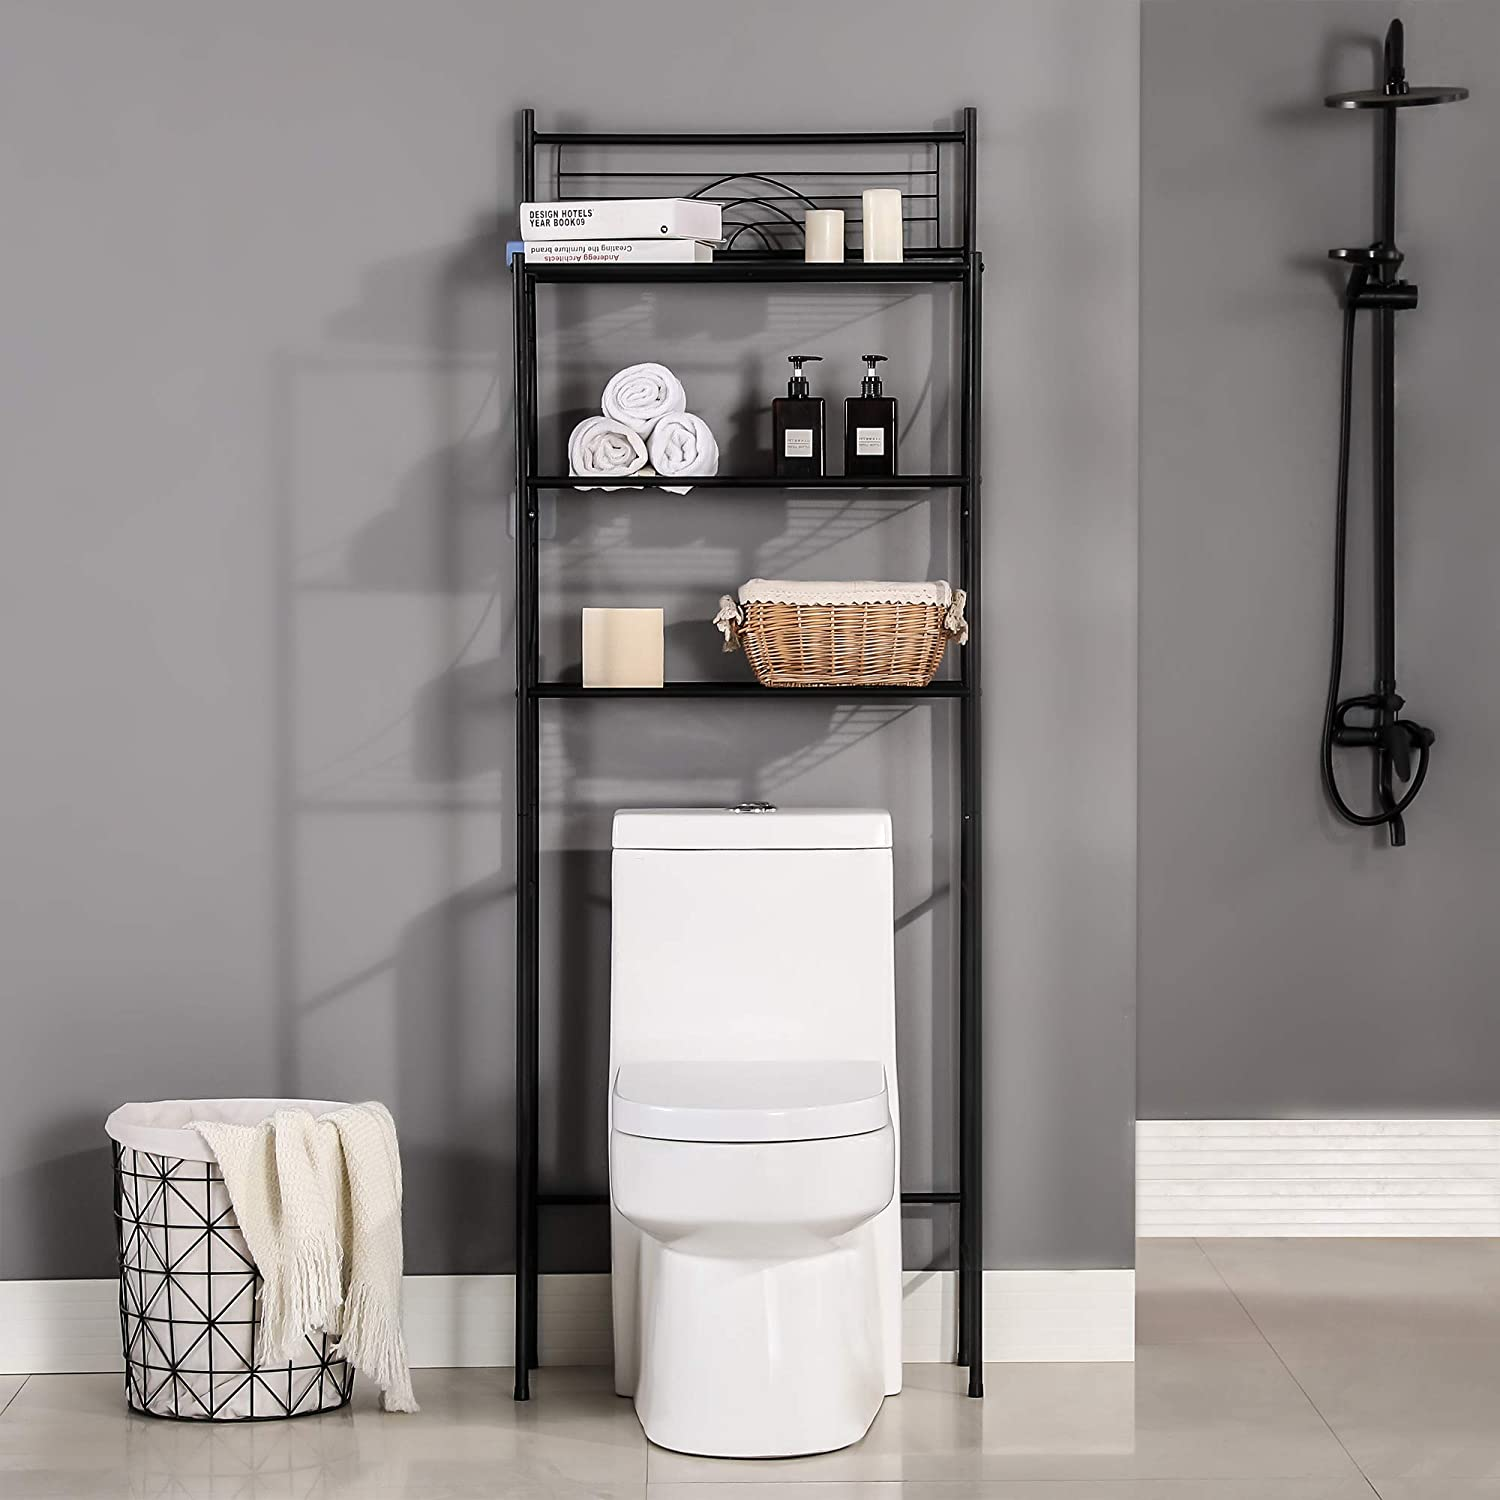 MallBoo Toilet Storage Rack, 3 -Tier Over-The-Toilet Bathroom Spacesaver - Easy to Assemble